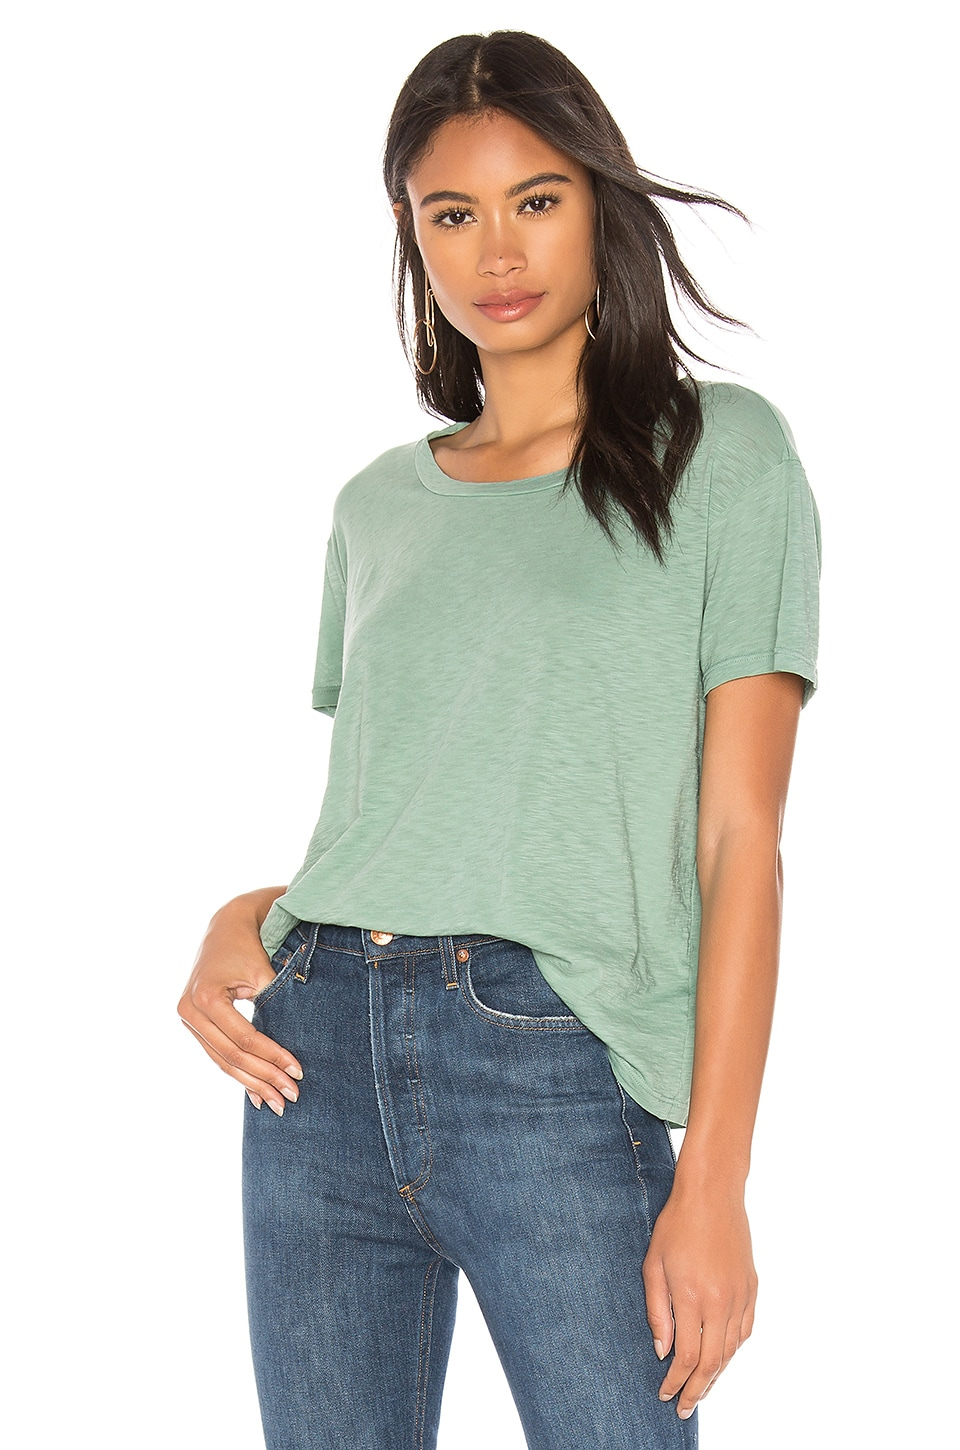 SUNDRY Vintage Tee in Agave